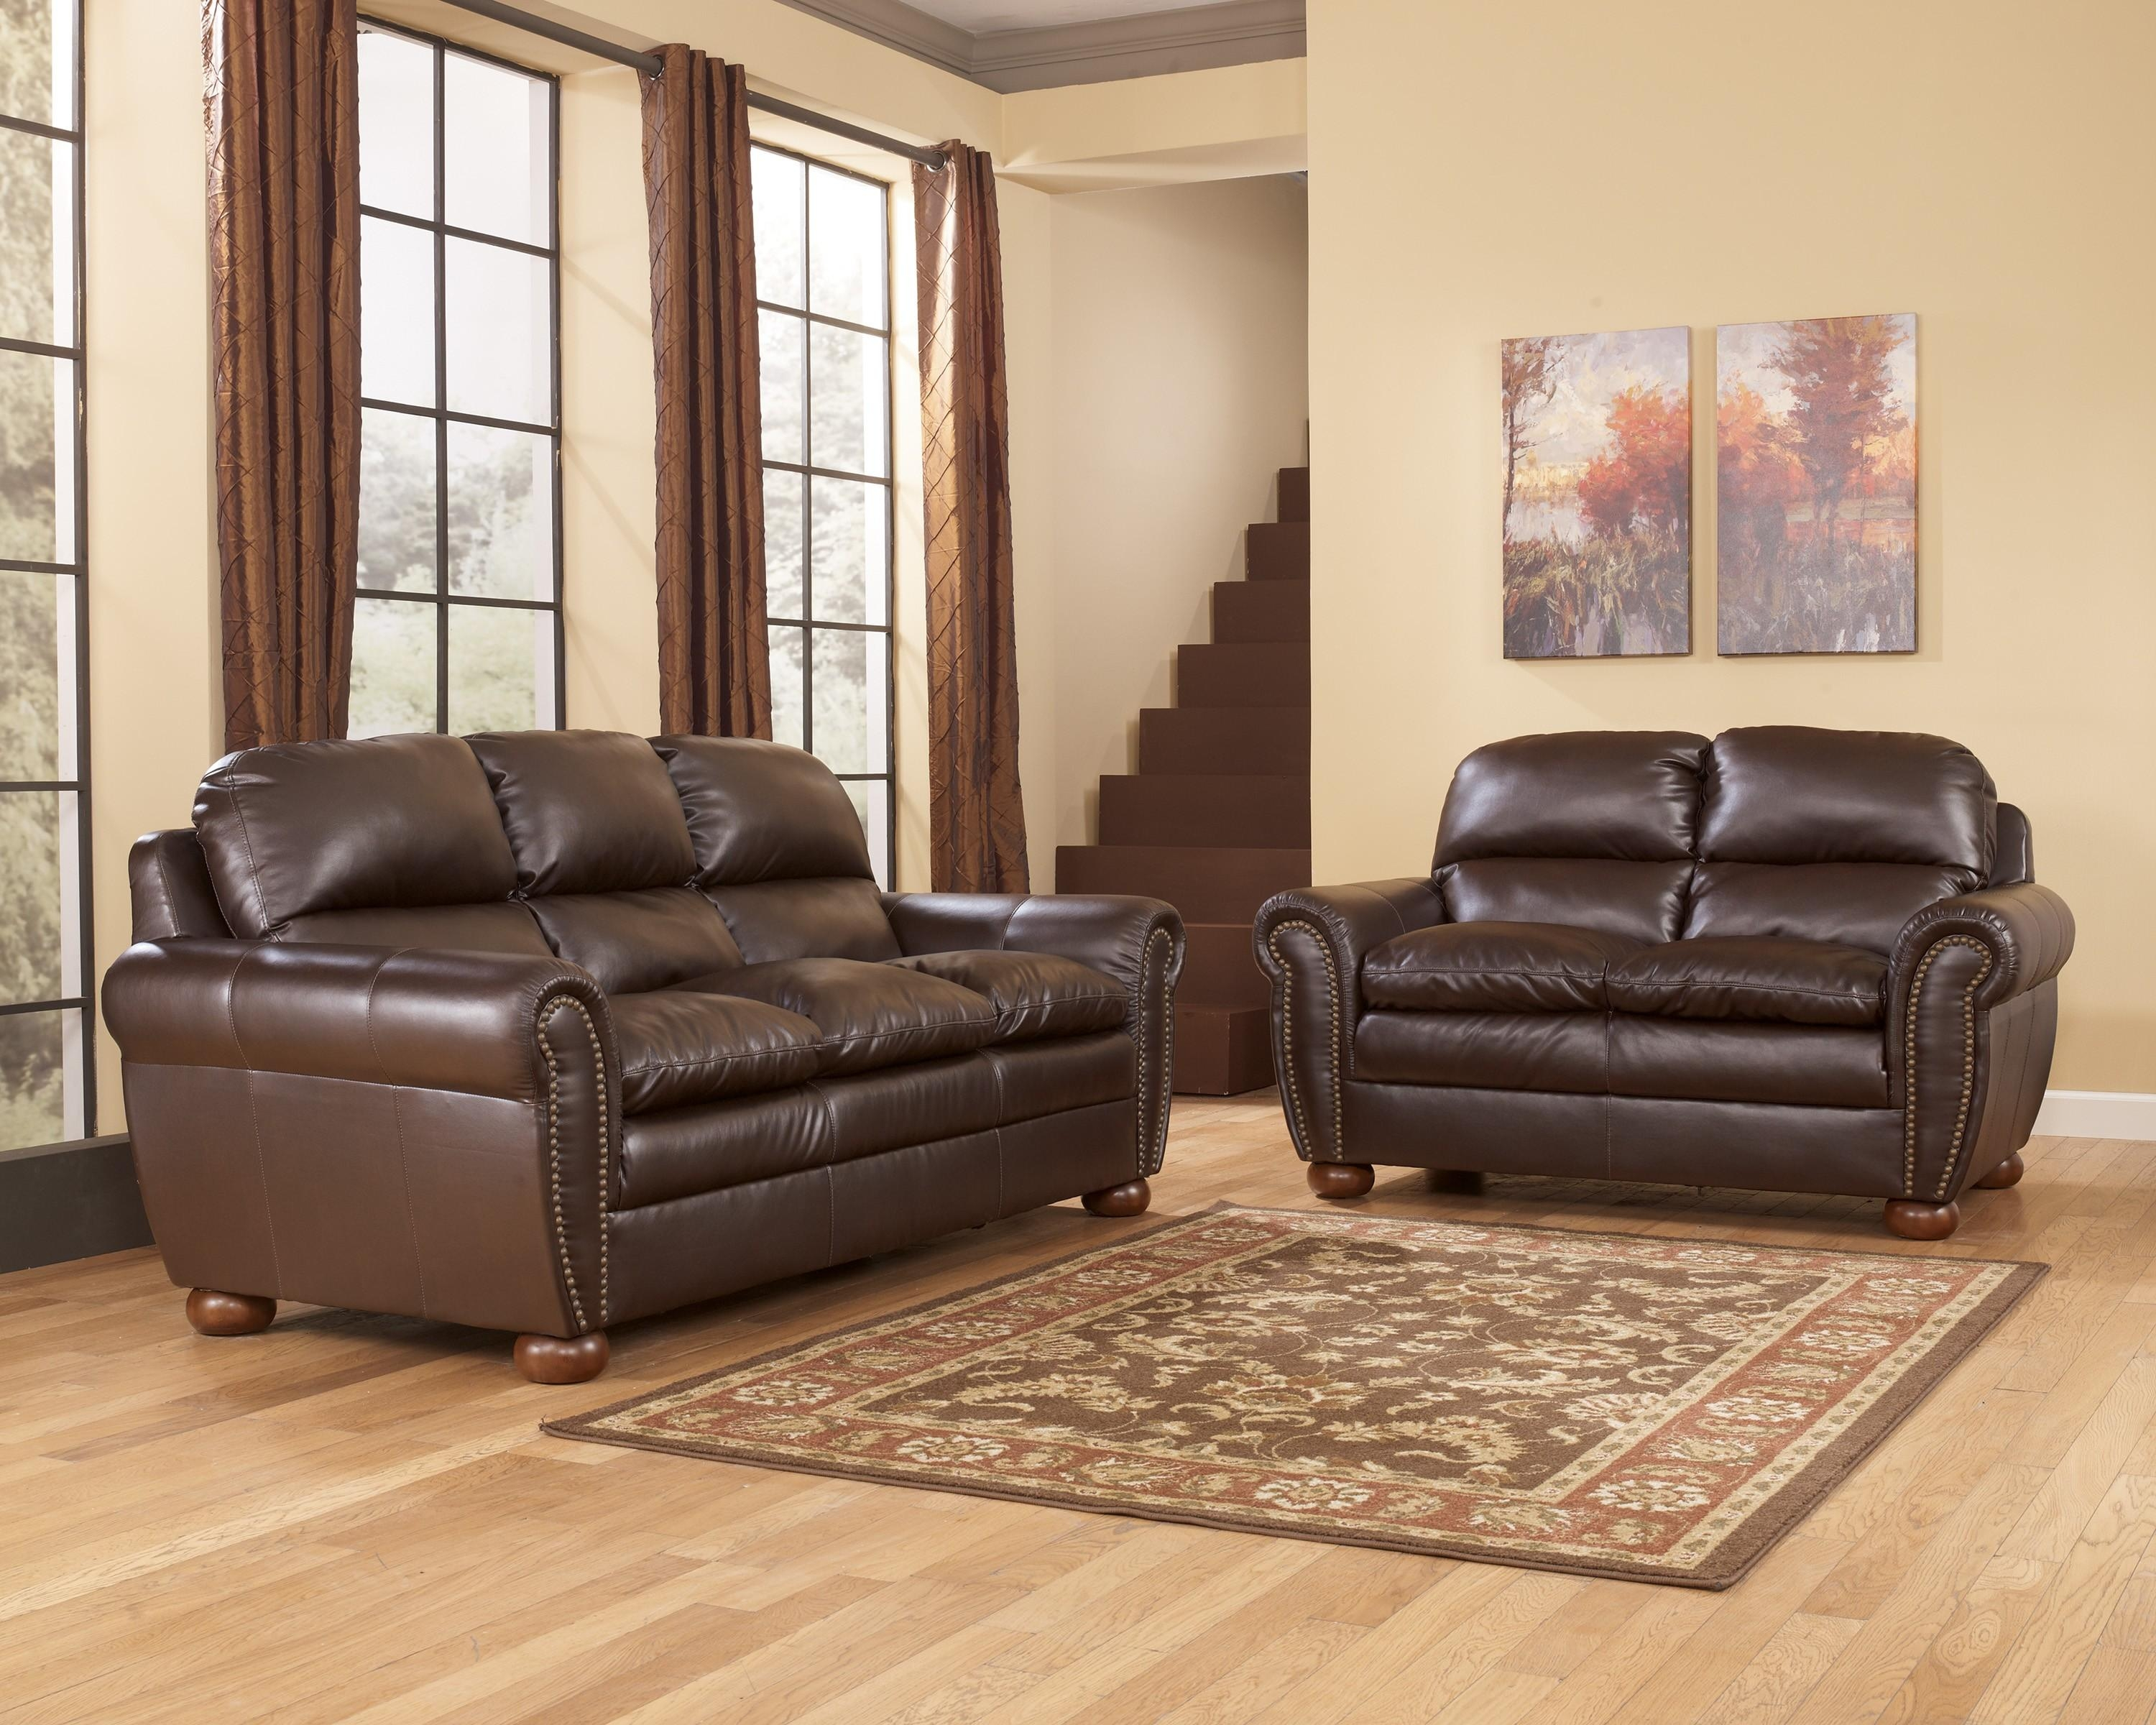 Furniture Home : Ashley Furniture Leather Sectional Sofa 92 With Pertaining To Ashley Furniture Leather Sectional Sofas (View 10 of 20)